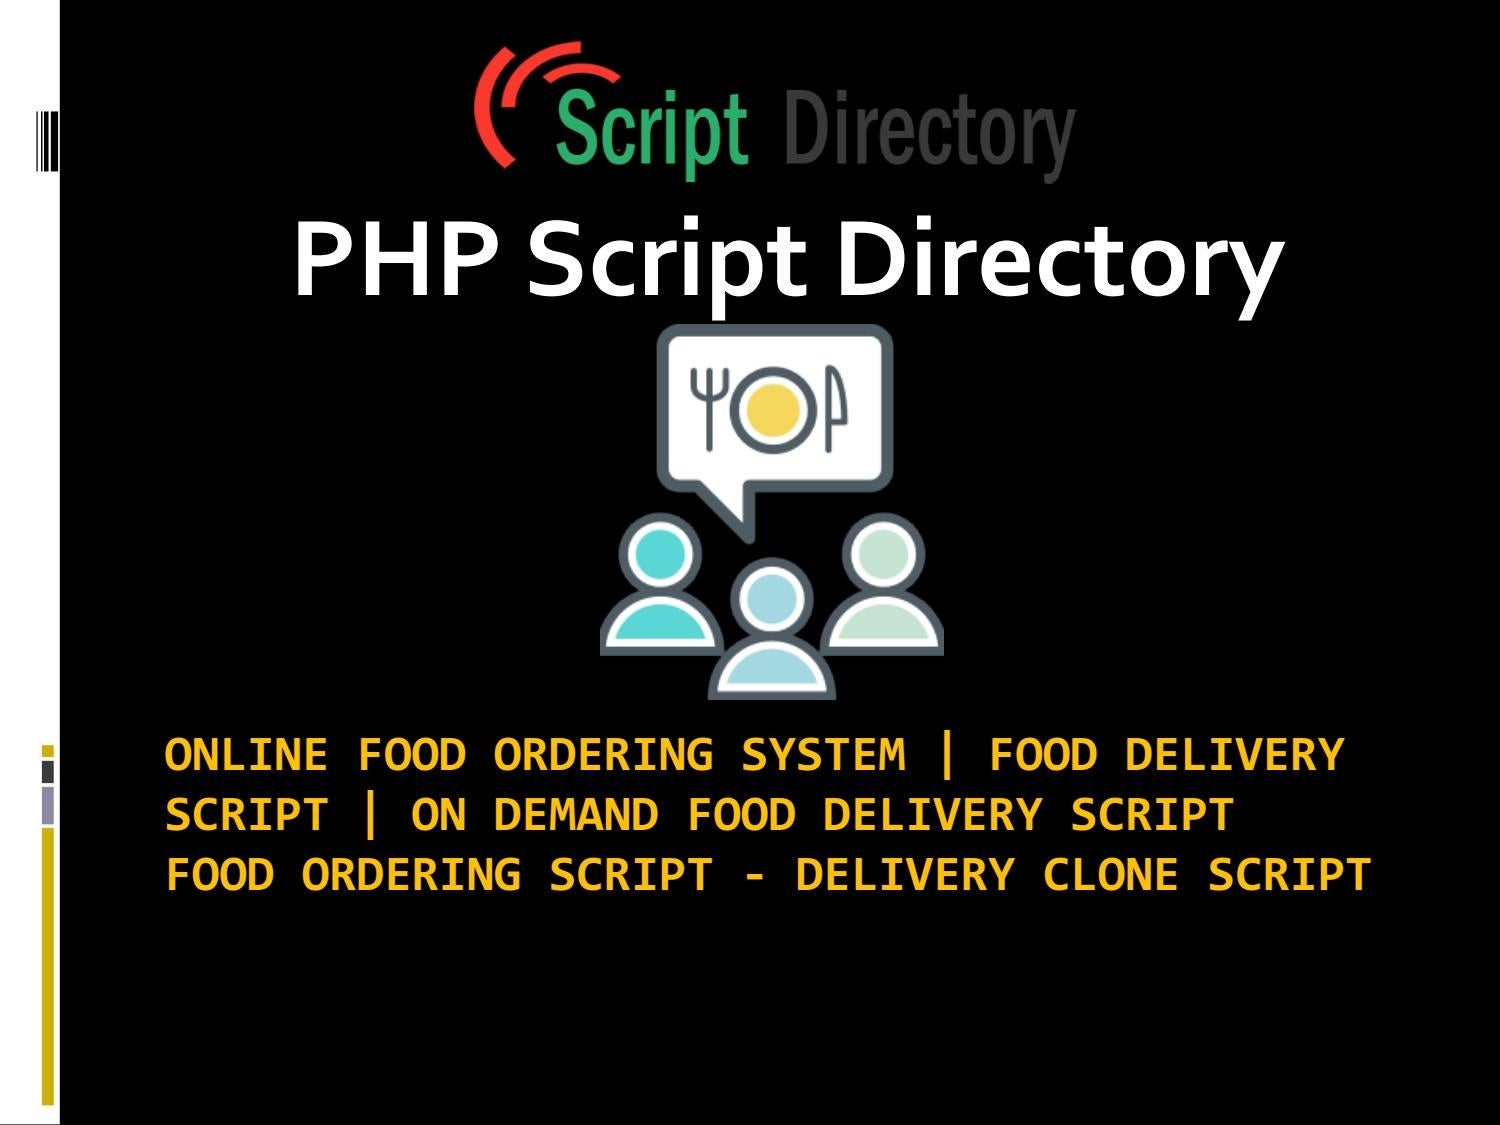 Where to find Top Food Delivery Script | On Demand Food